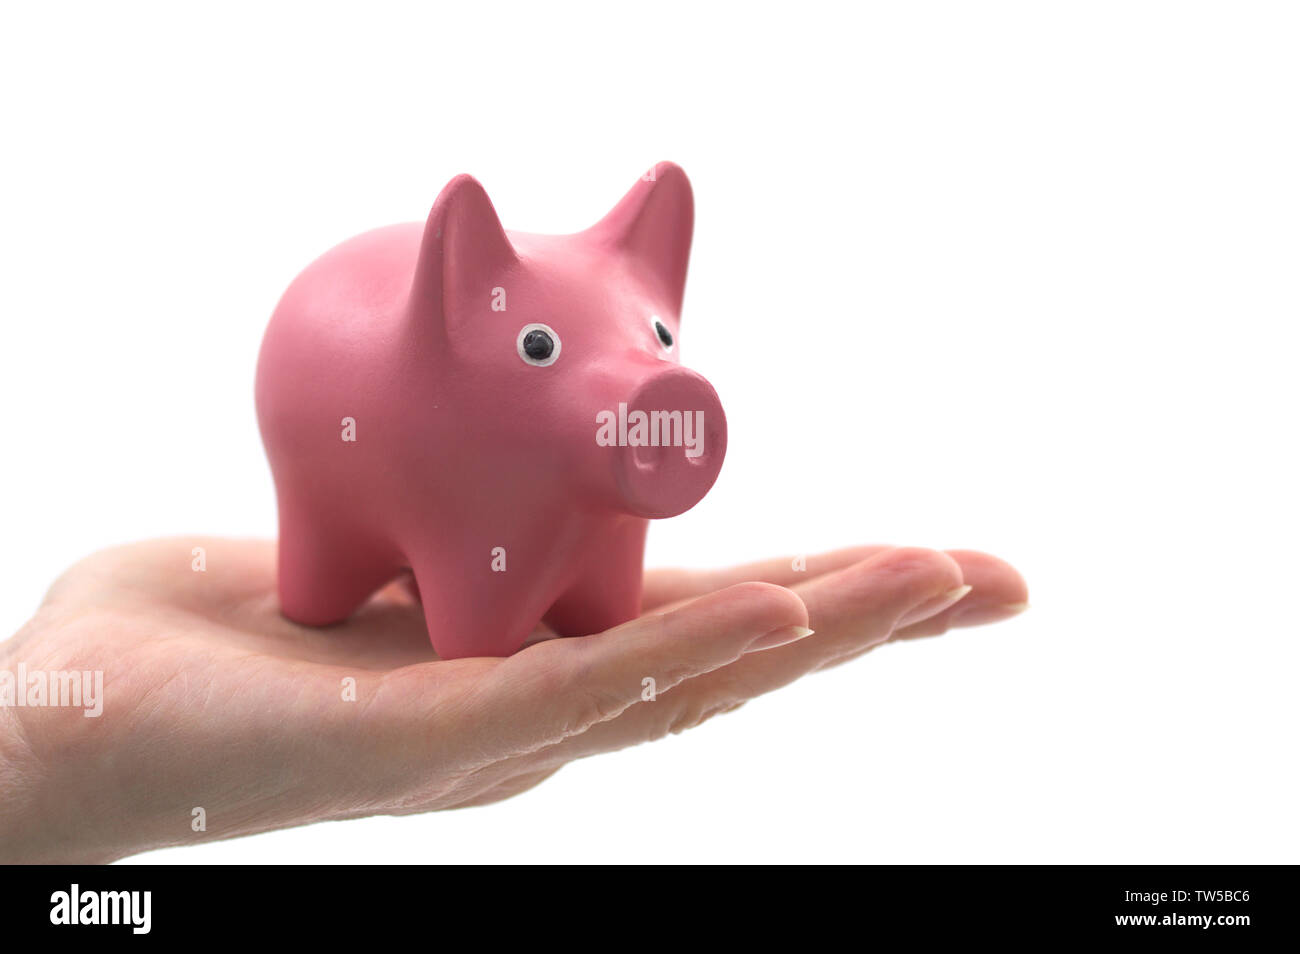 Savings concept: a pig-shaped piggy bank in the hand of a person with blank background - Stock Image